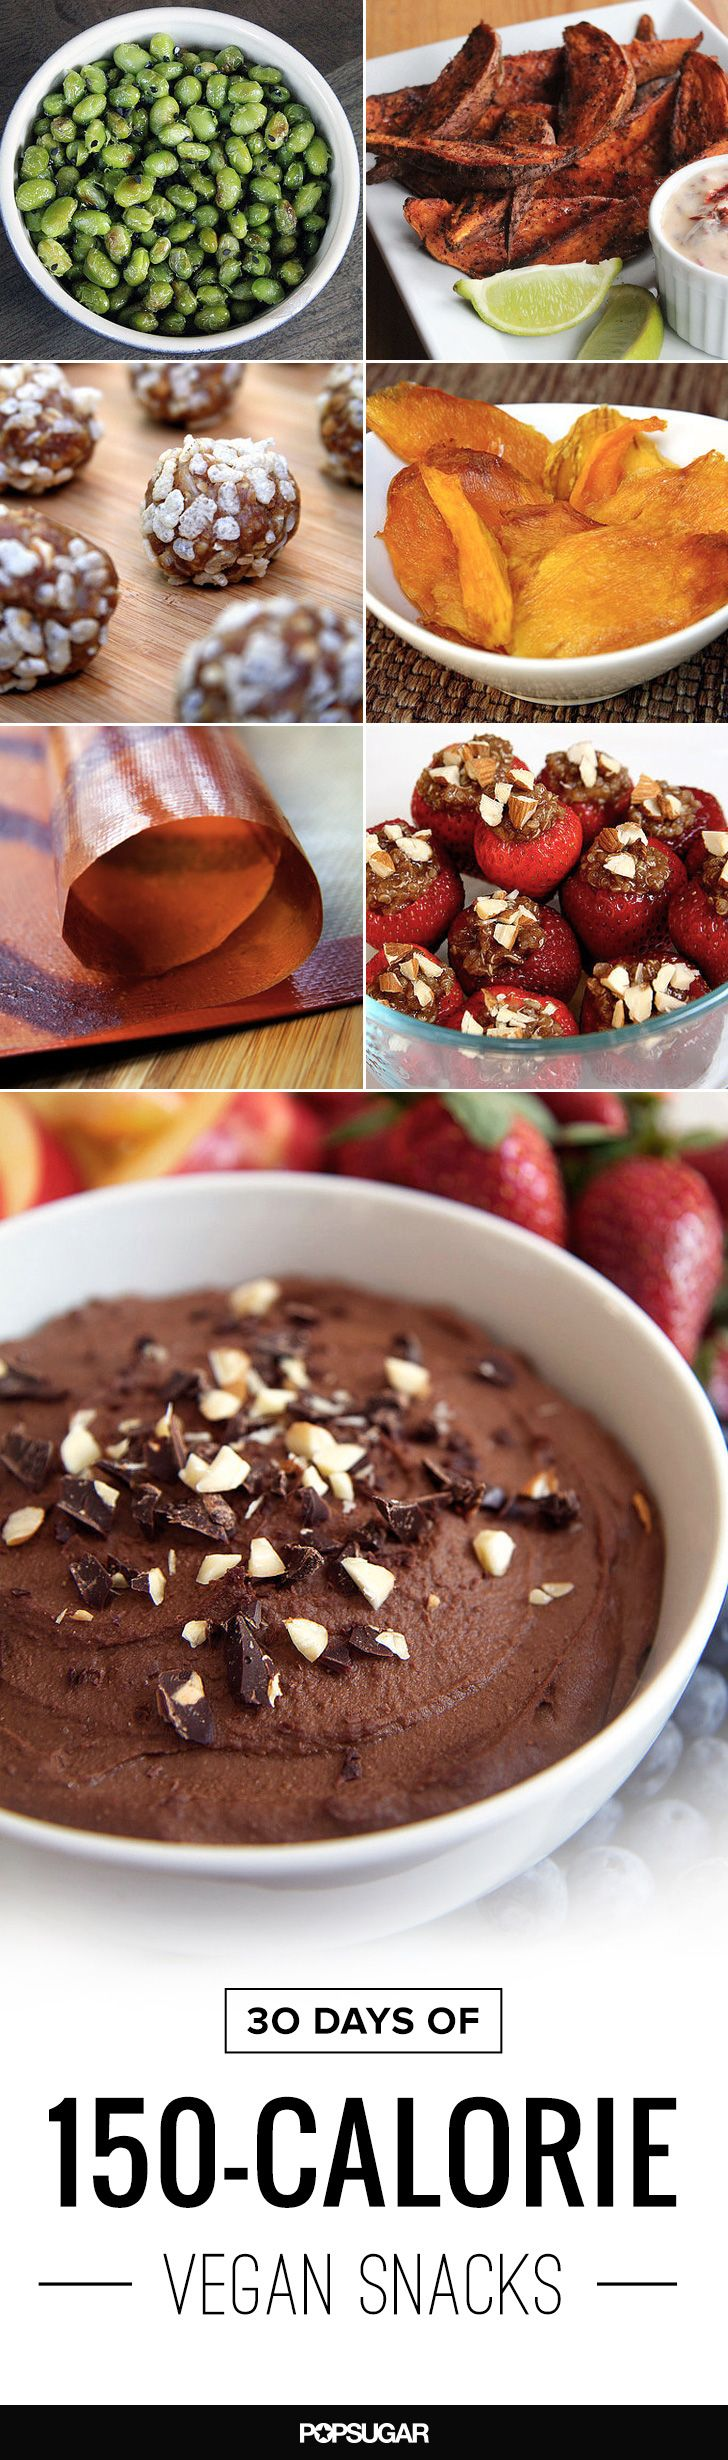 30 Days of 150-Calorie Snacks — They're All Completely Vegan!